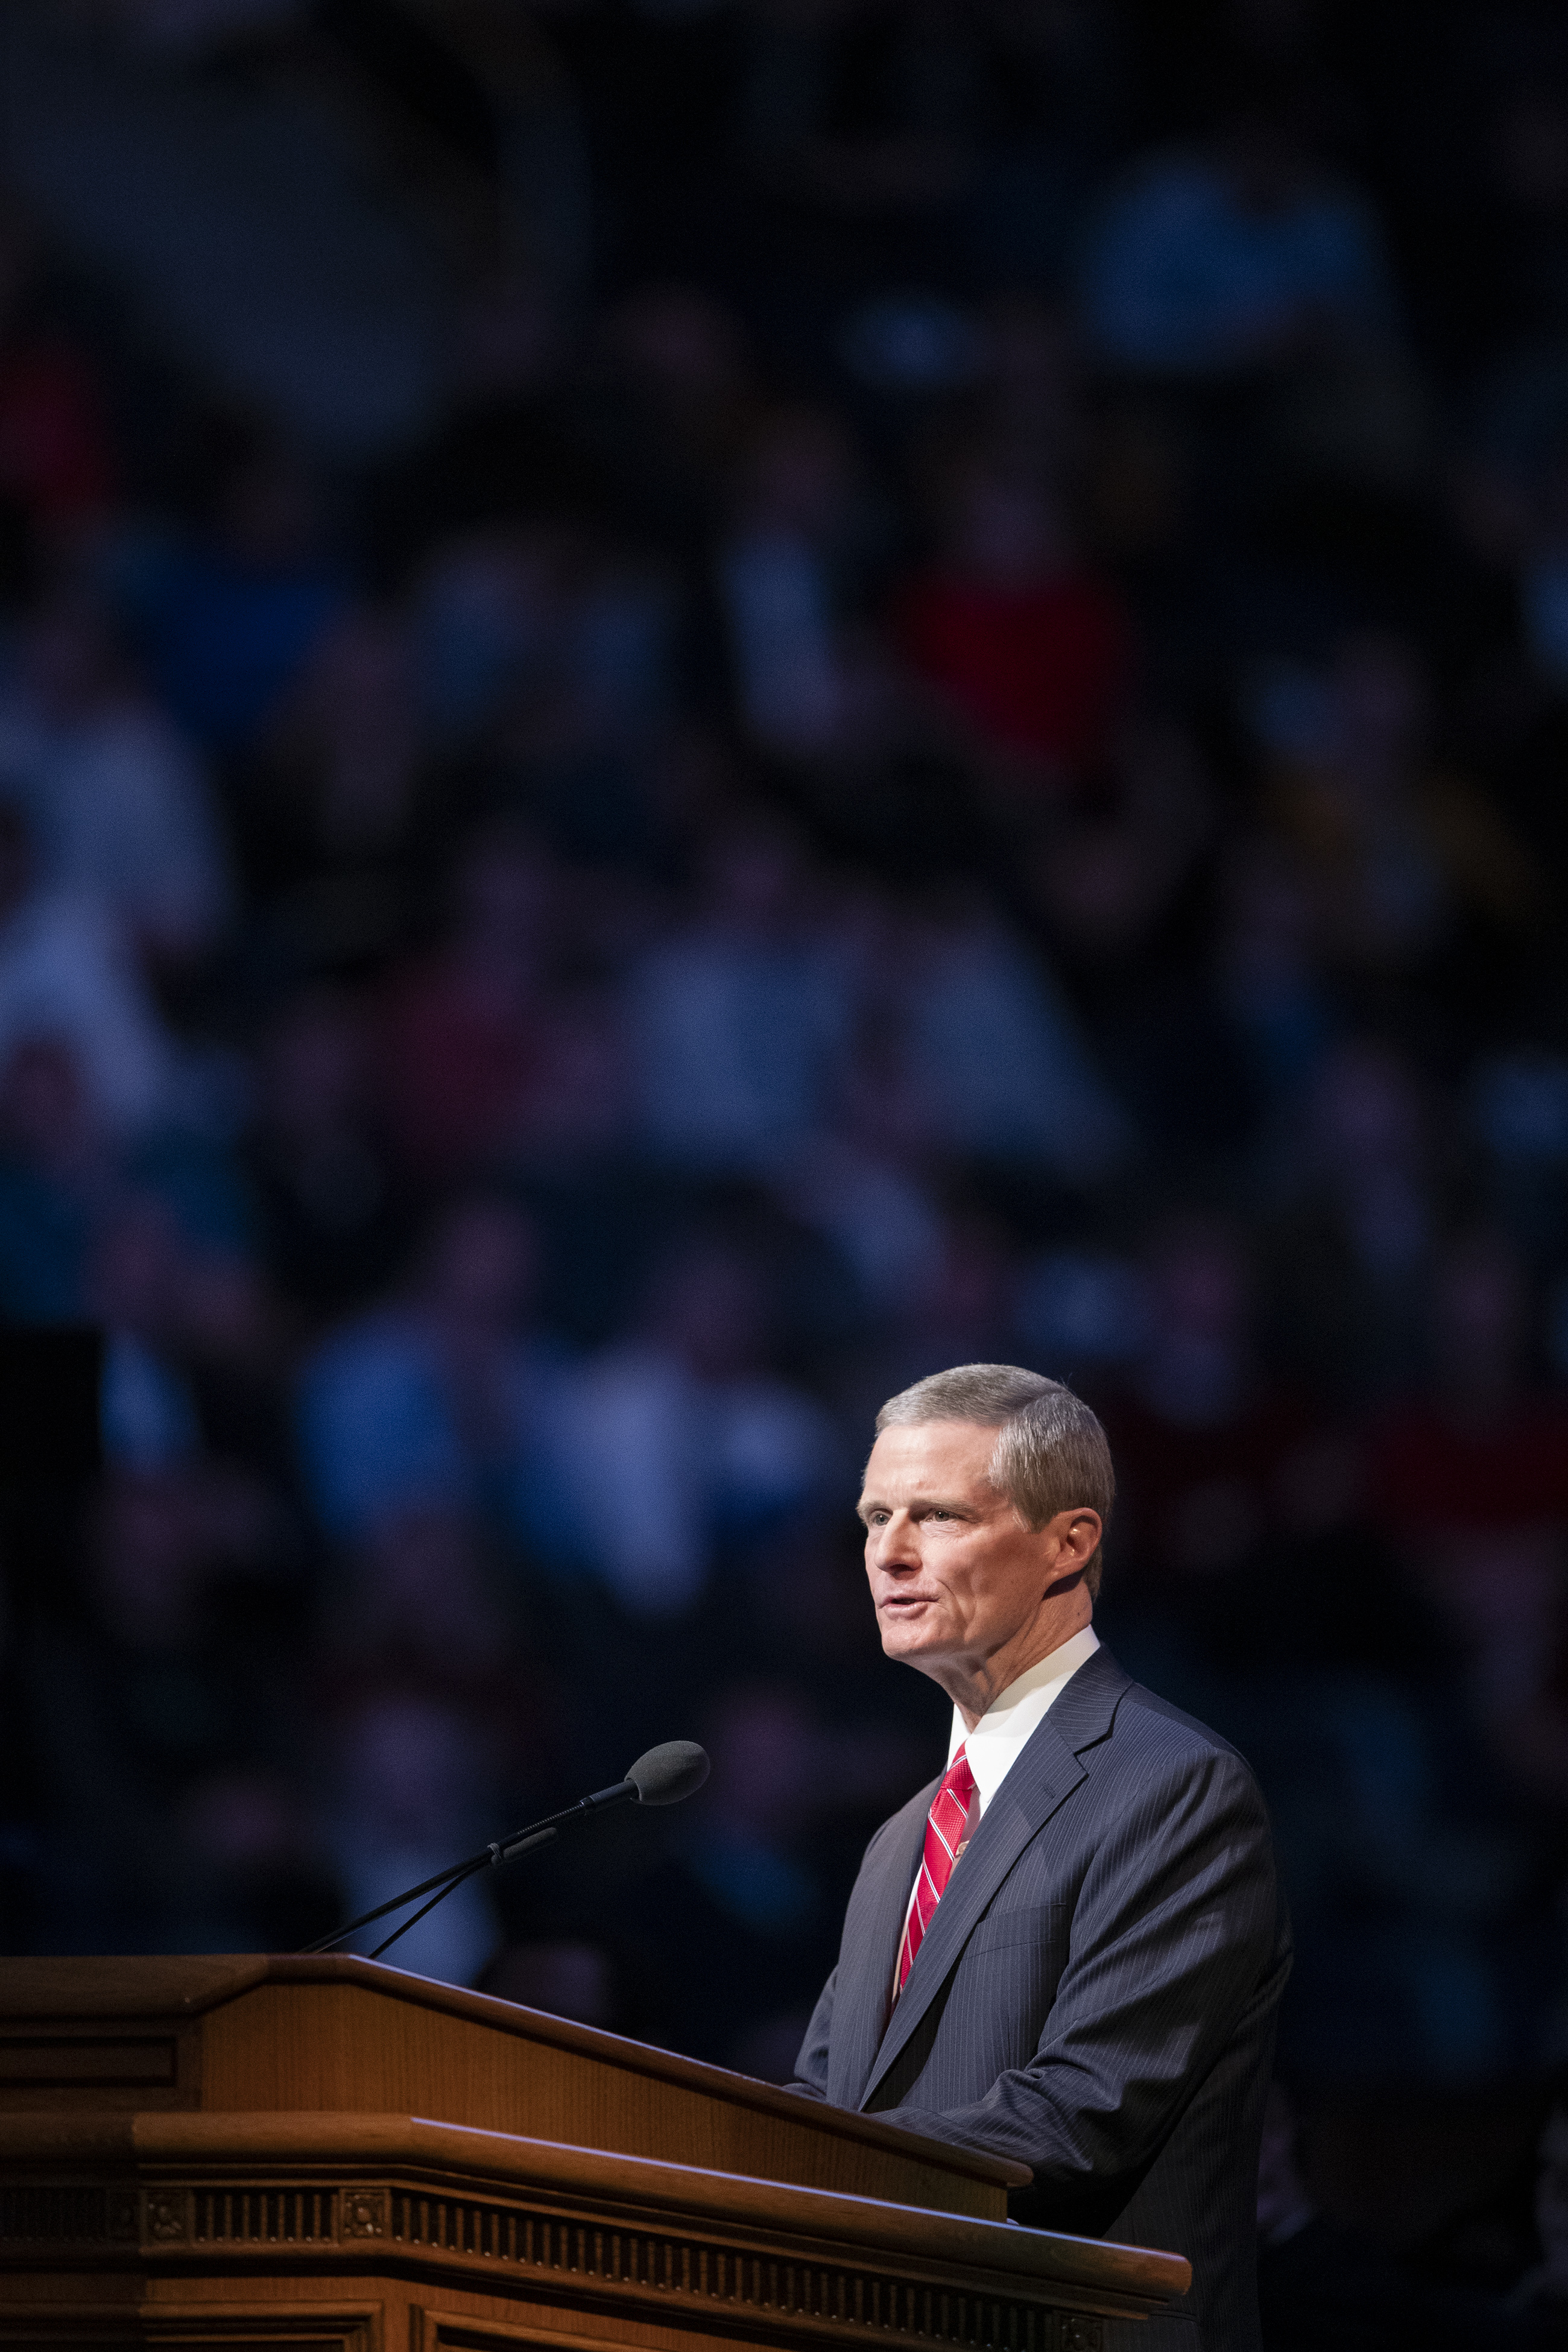 Elder David A. Bednar of the Quorum of the Twelve Apostles of The Church of Jesus Christ of Latter-day Saints speaks during the campus devotional held in the Marriott Center at BYU in Provo on Tuesday, Dec. 4, 2018.